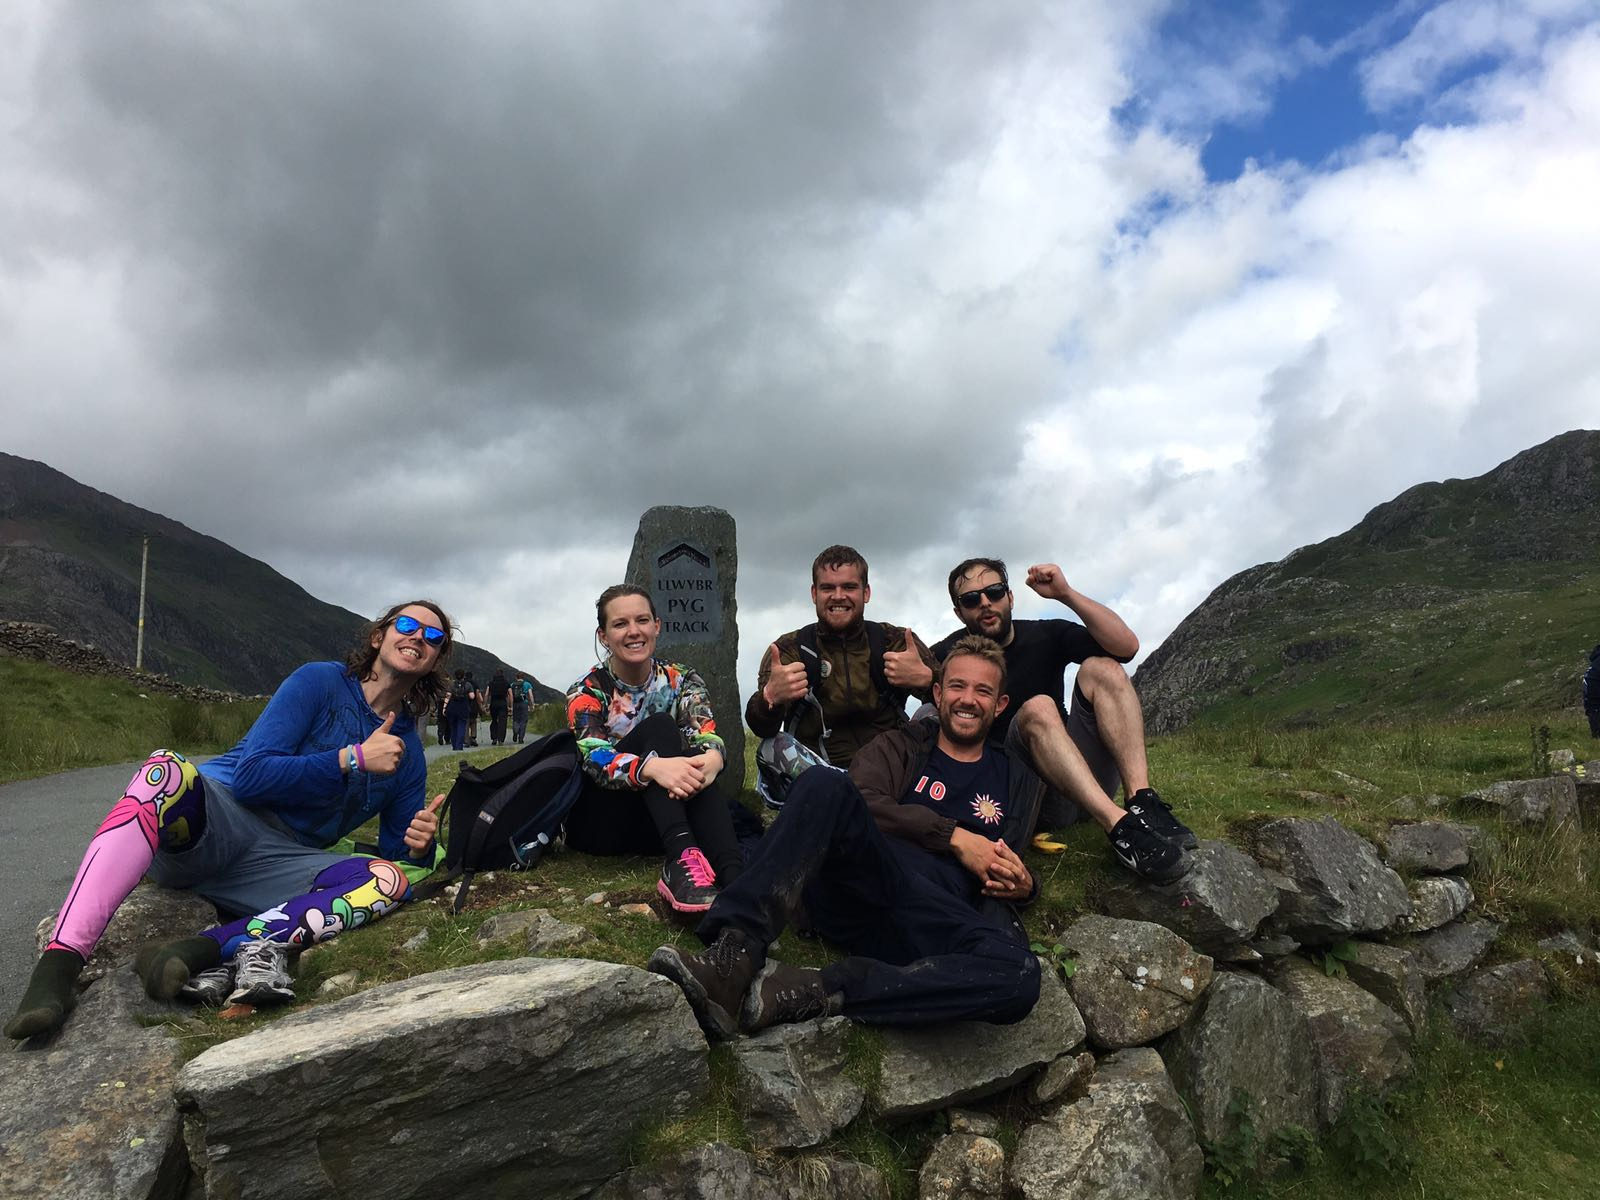 Three Peak Challenge by SMC Coach Hire - All for charity